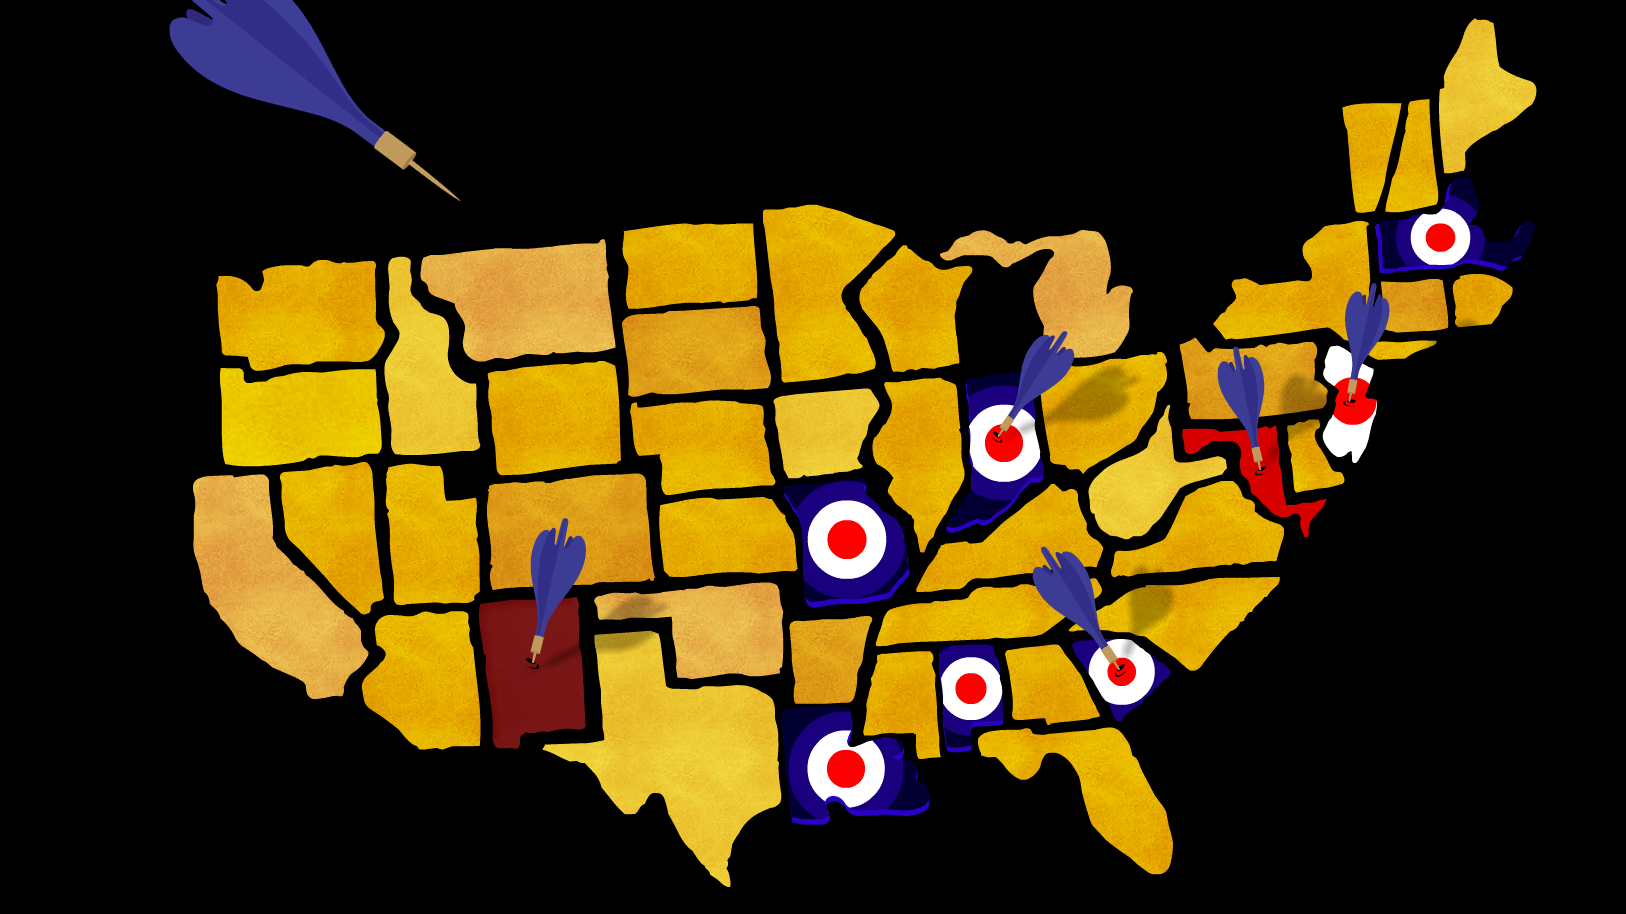 Targeted lawn dart removal of several states.